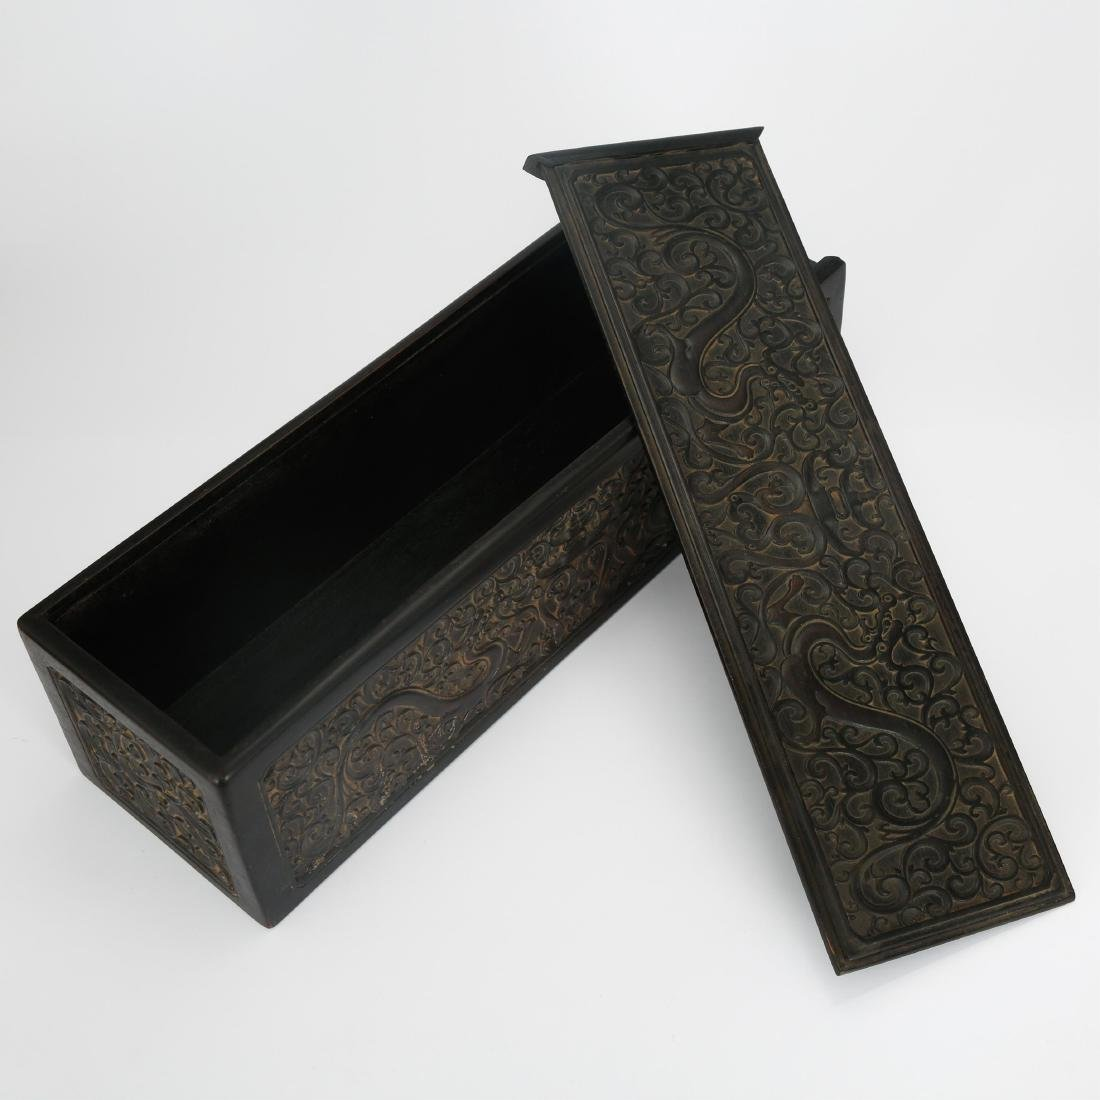 CHINESE ZITAN WOOD SCROLL COVER BOX - 10